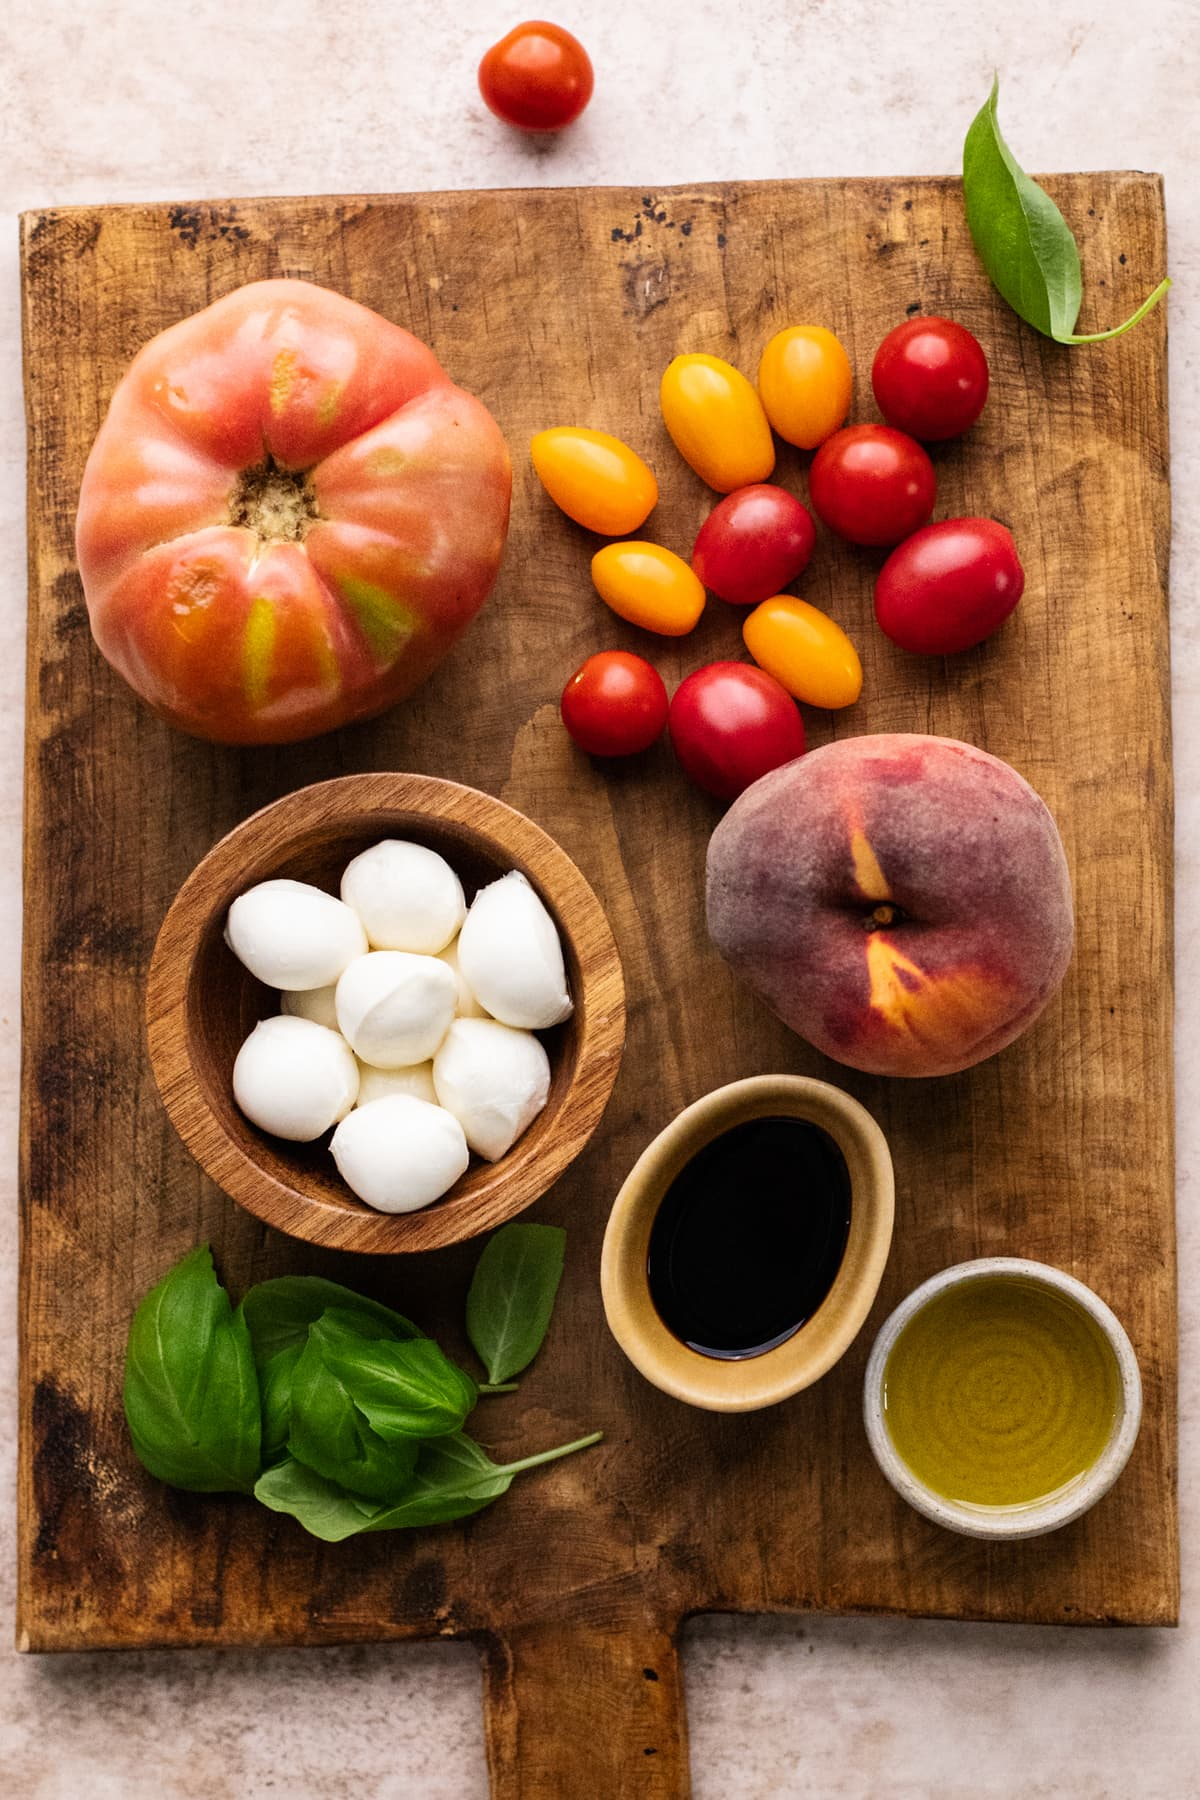 Ingredients for peach caprese salad arranged on brown wooden cutting board.